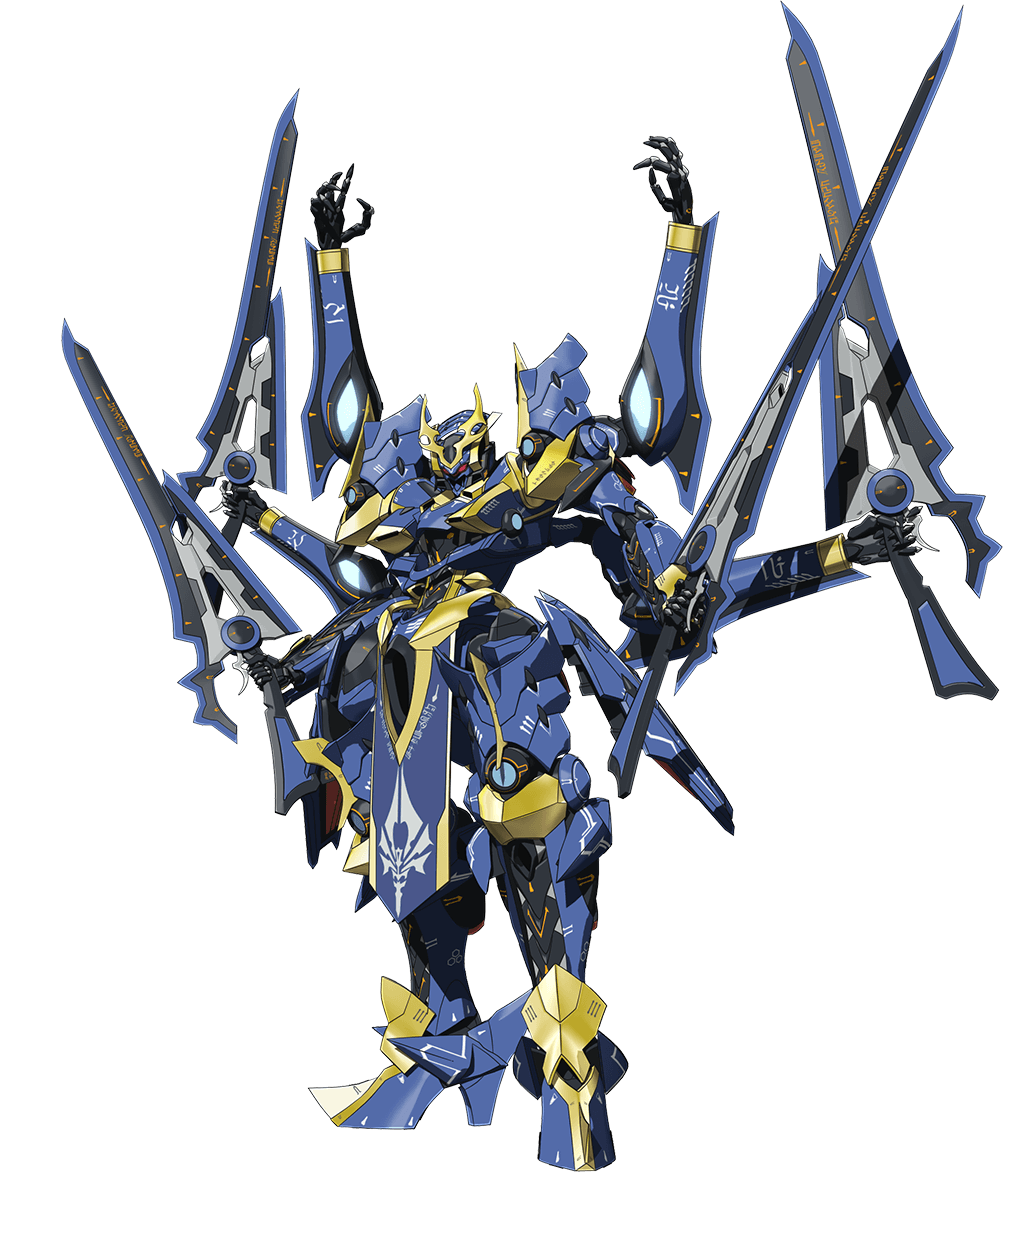 Anime robot png. Ikaruga knight s magic